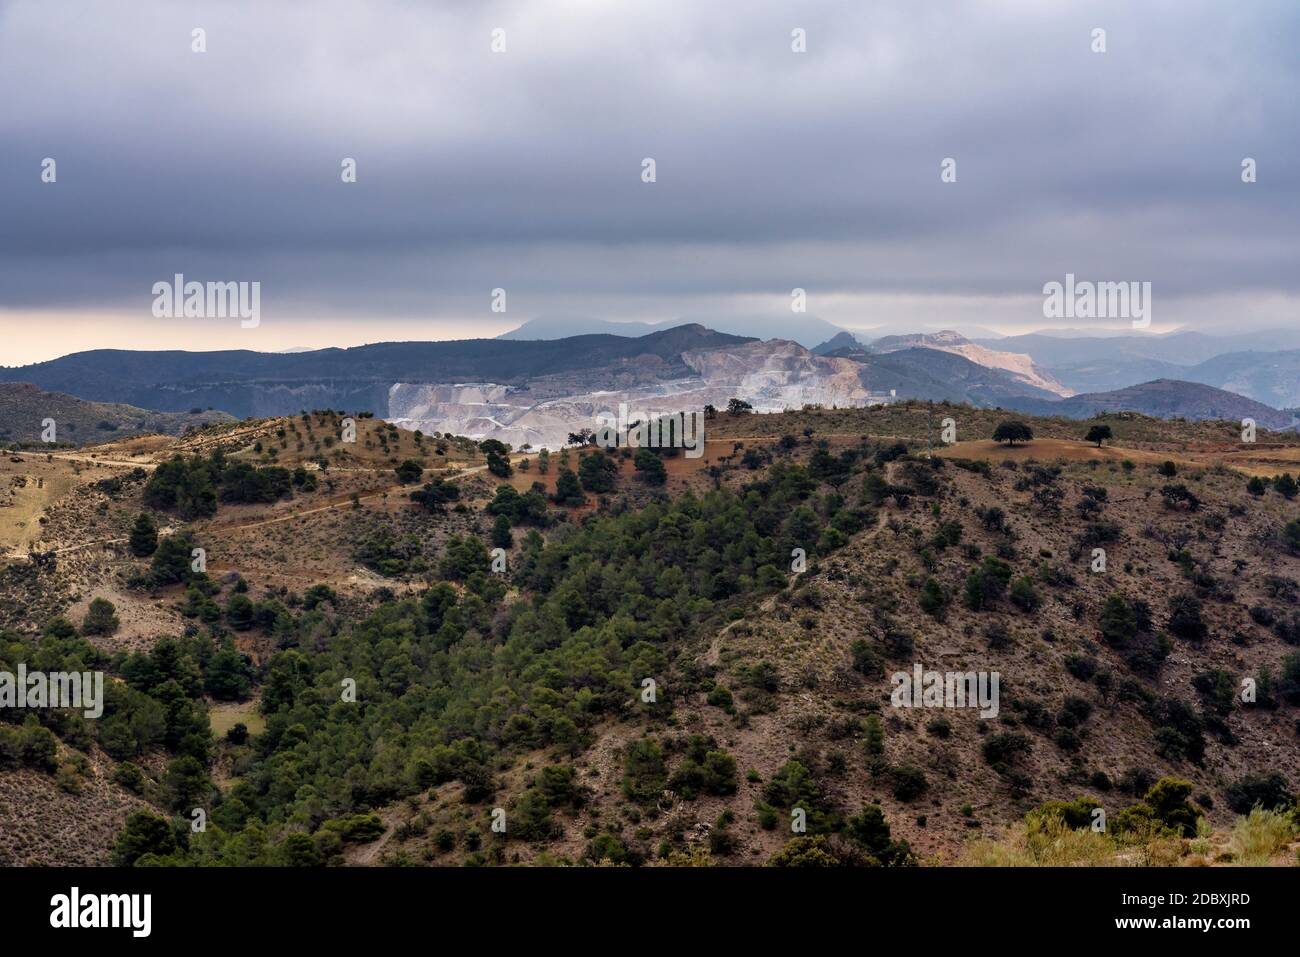 a view of the desert of Tabernas in Chercos in Province of Almeria, in Spain Stock Photo